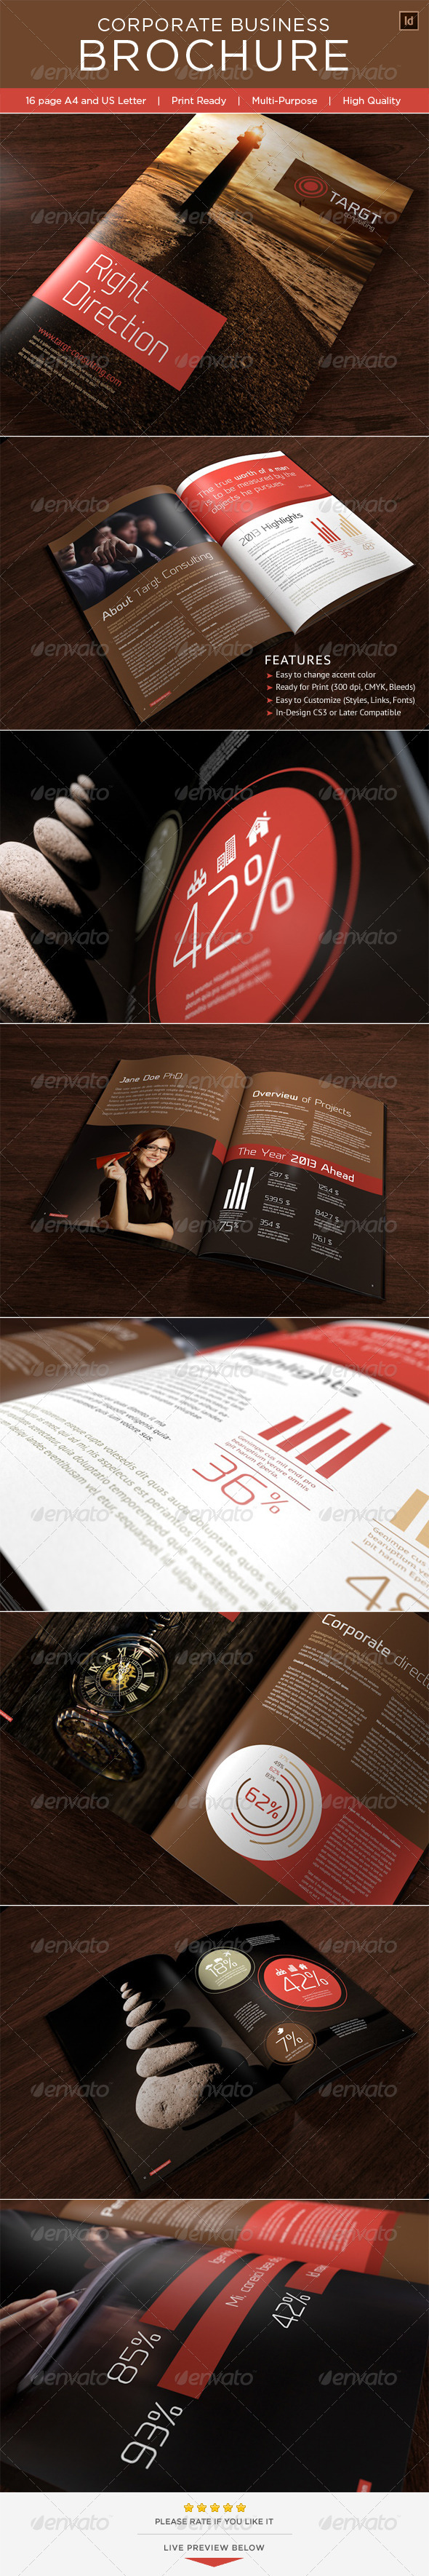 GraphicRiver Corporate Business Brochure 3551142